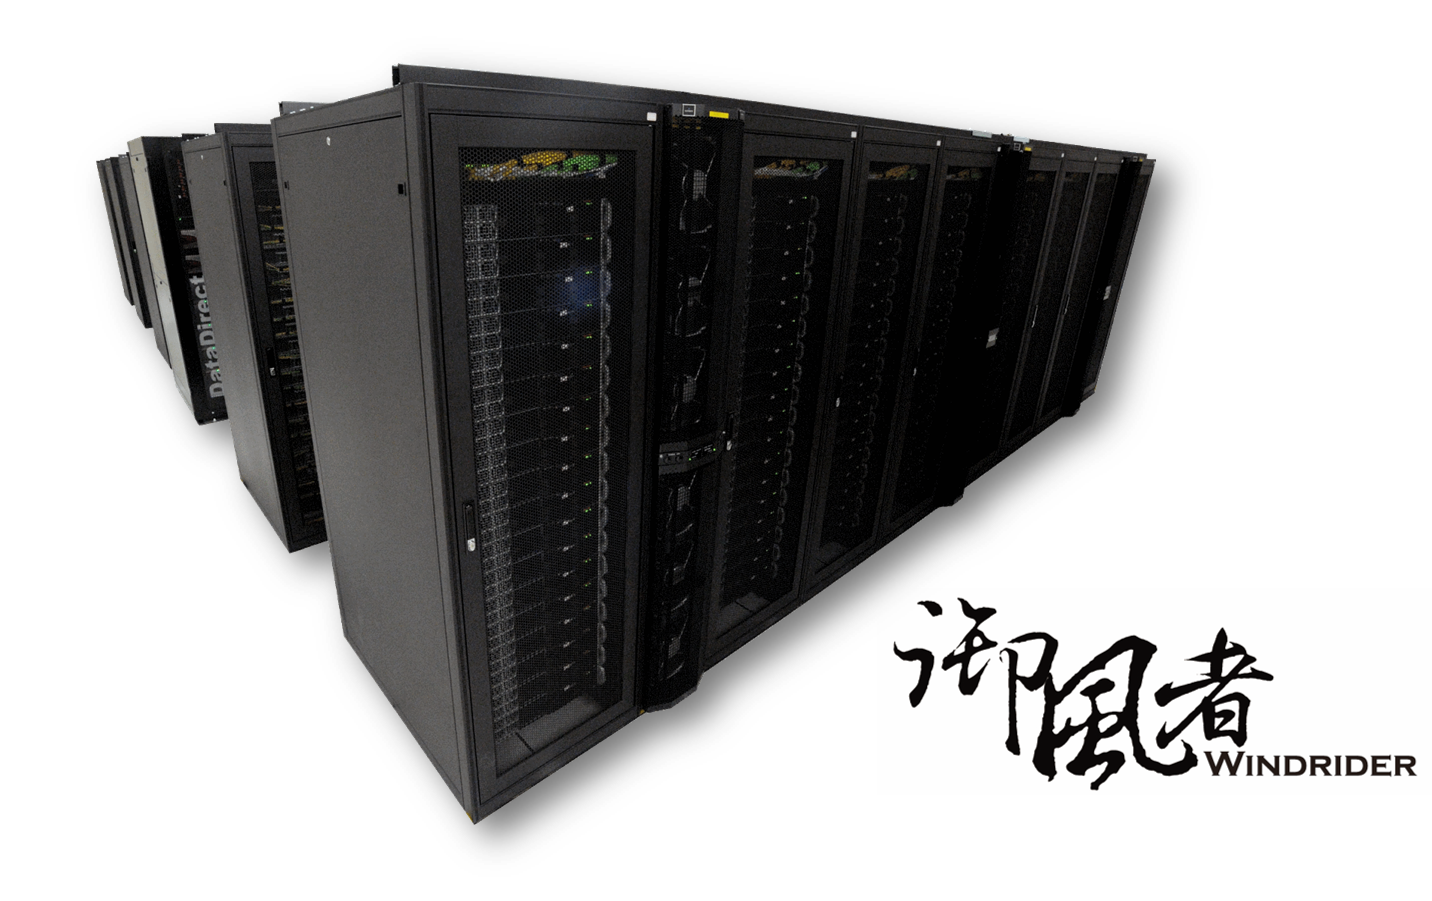 圖示-先進大規模超級叢集電腦ALPS-Advanced Large-scale Parallel Supercluster